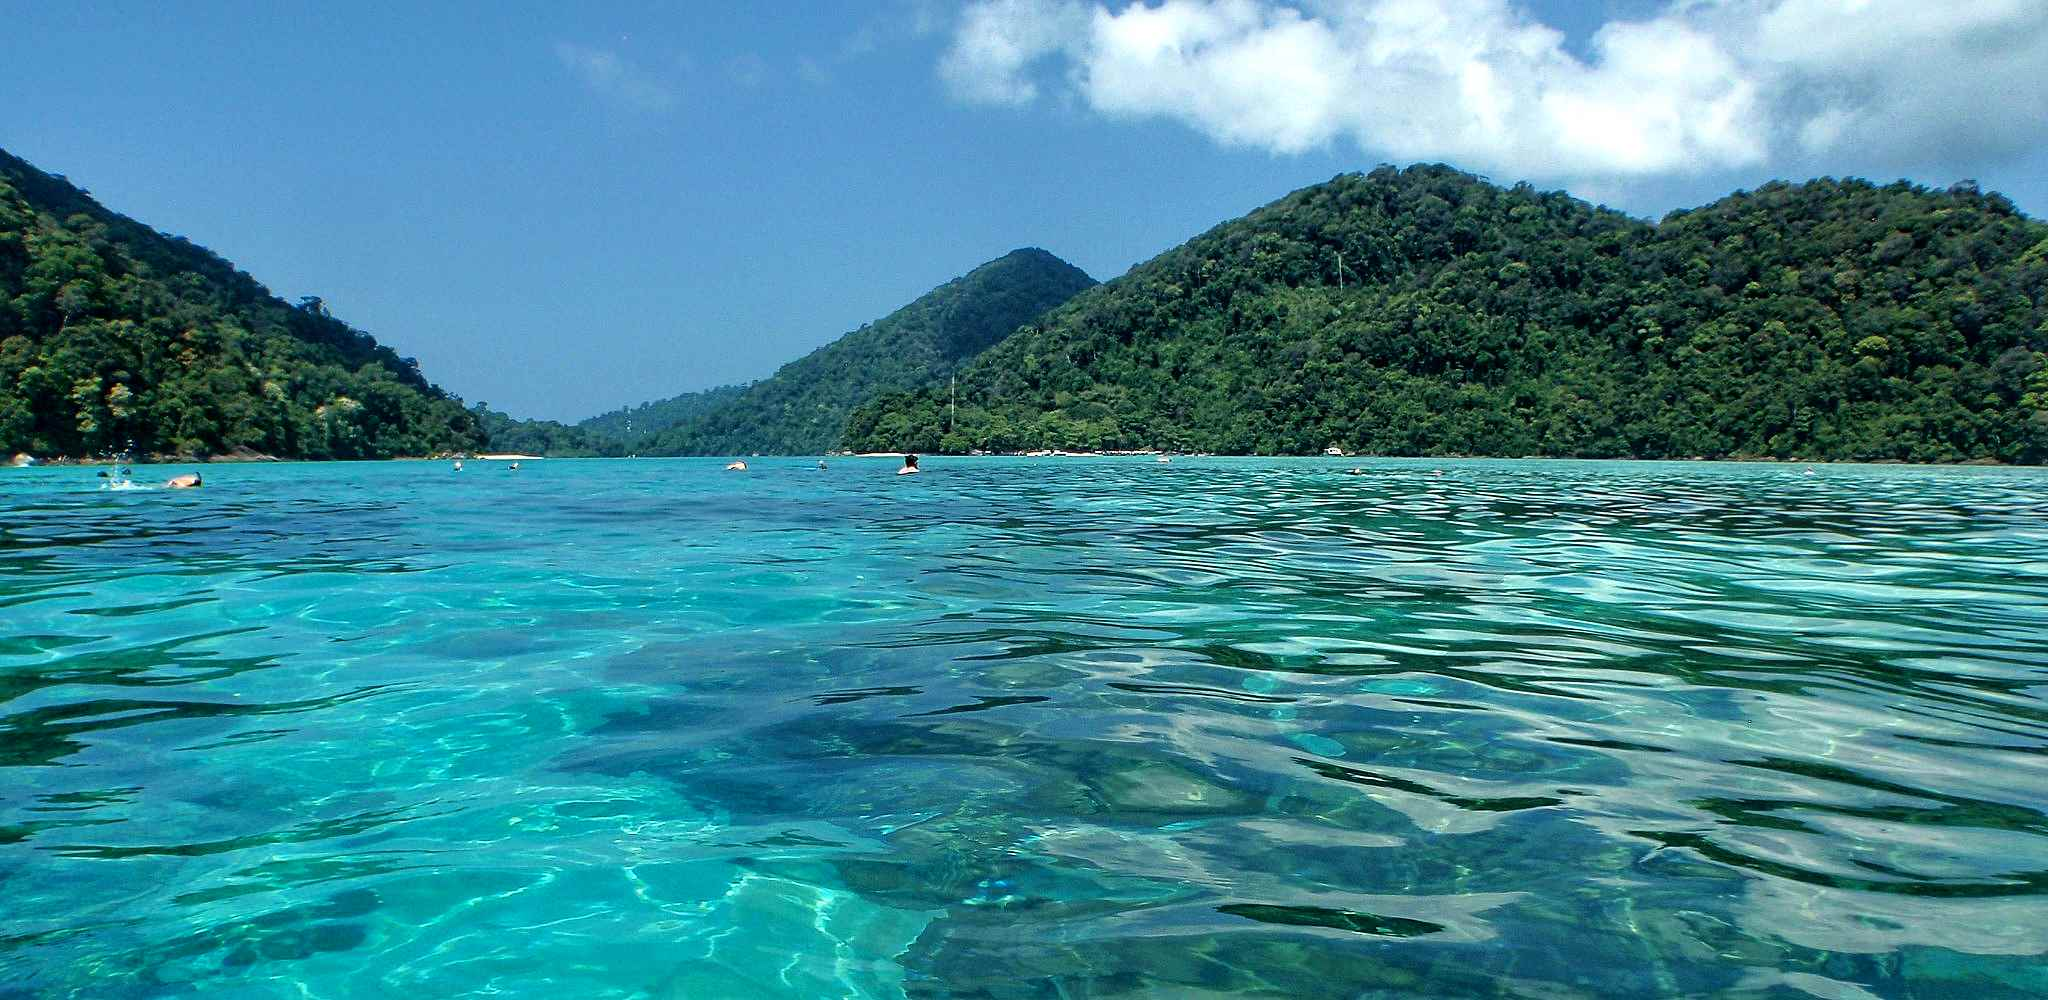 Mu Ko Surin National Park, crystal clear water surrounded by islands with lush green hills